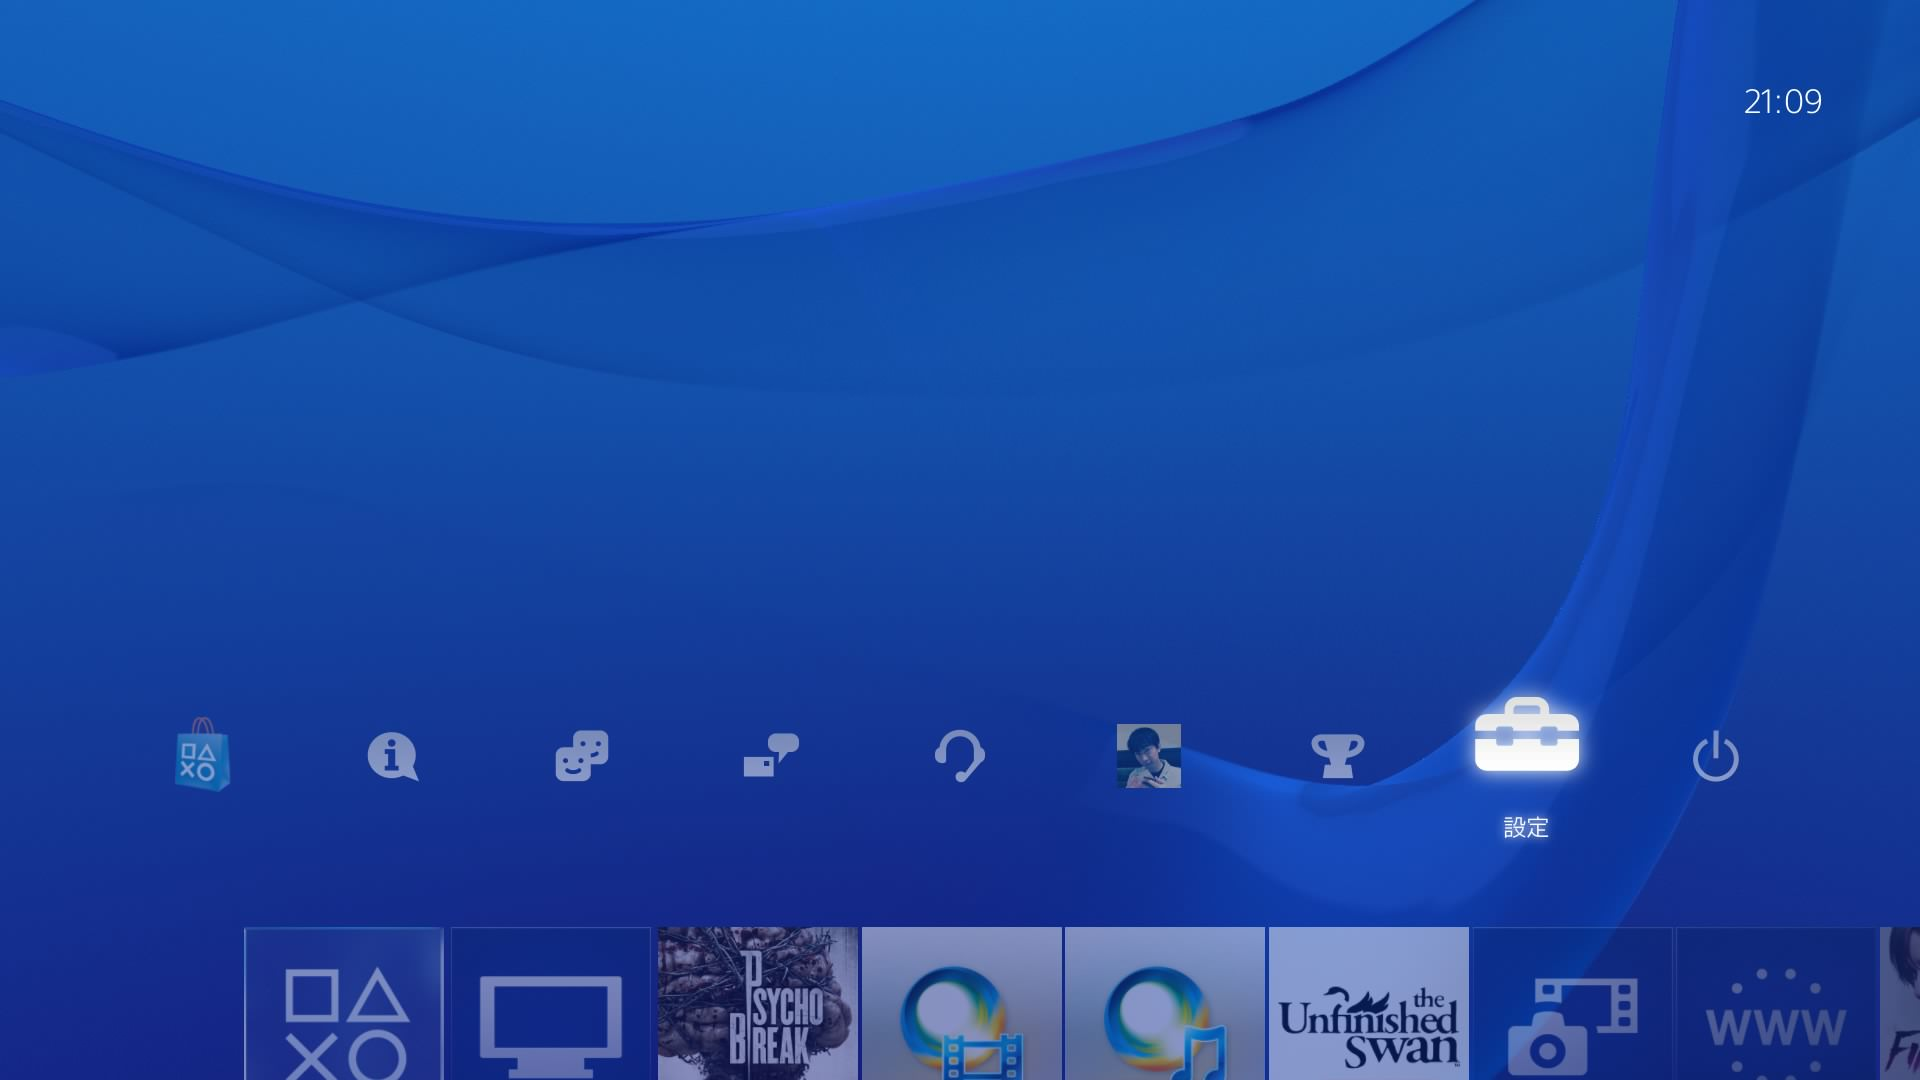 How to set theme of ps4 03